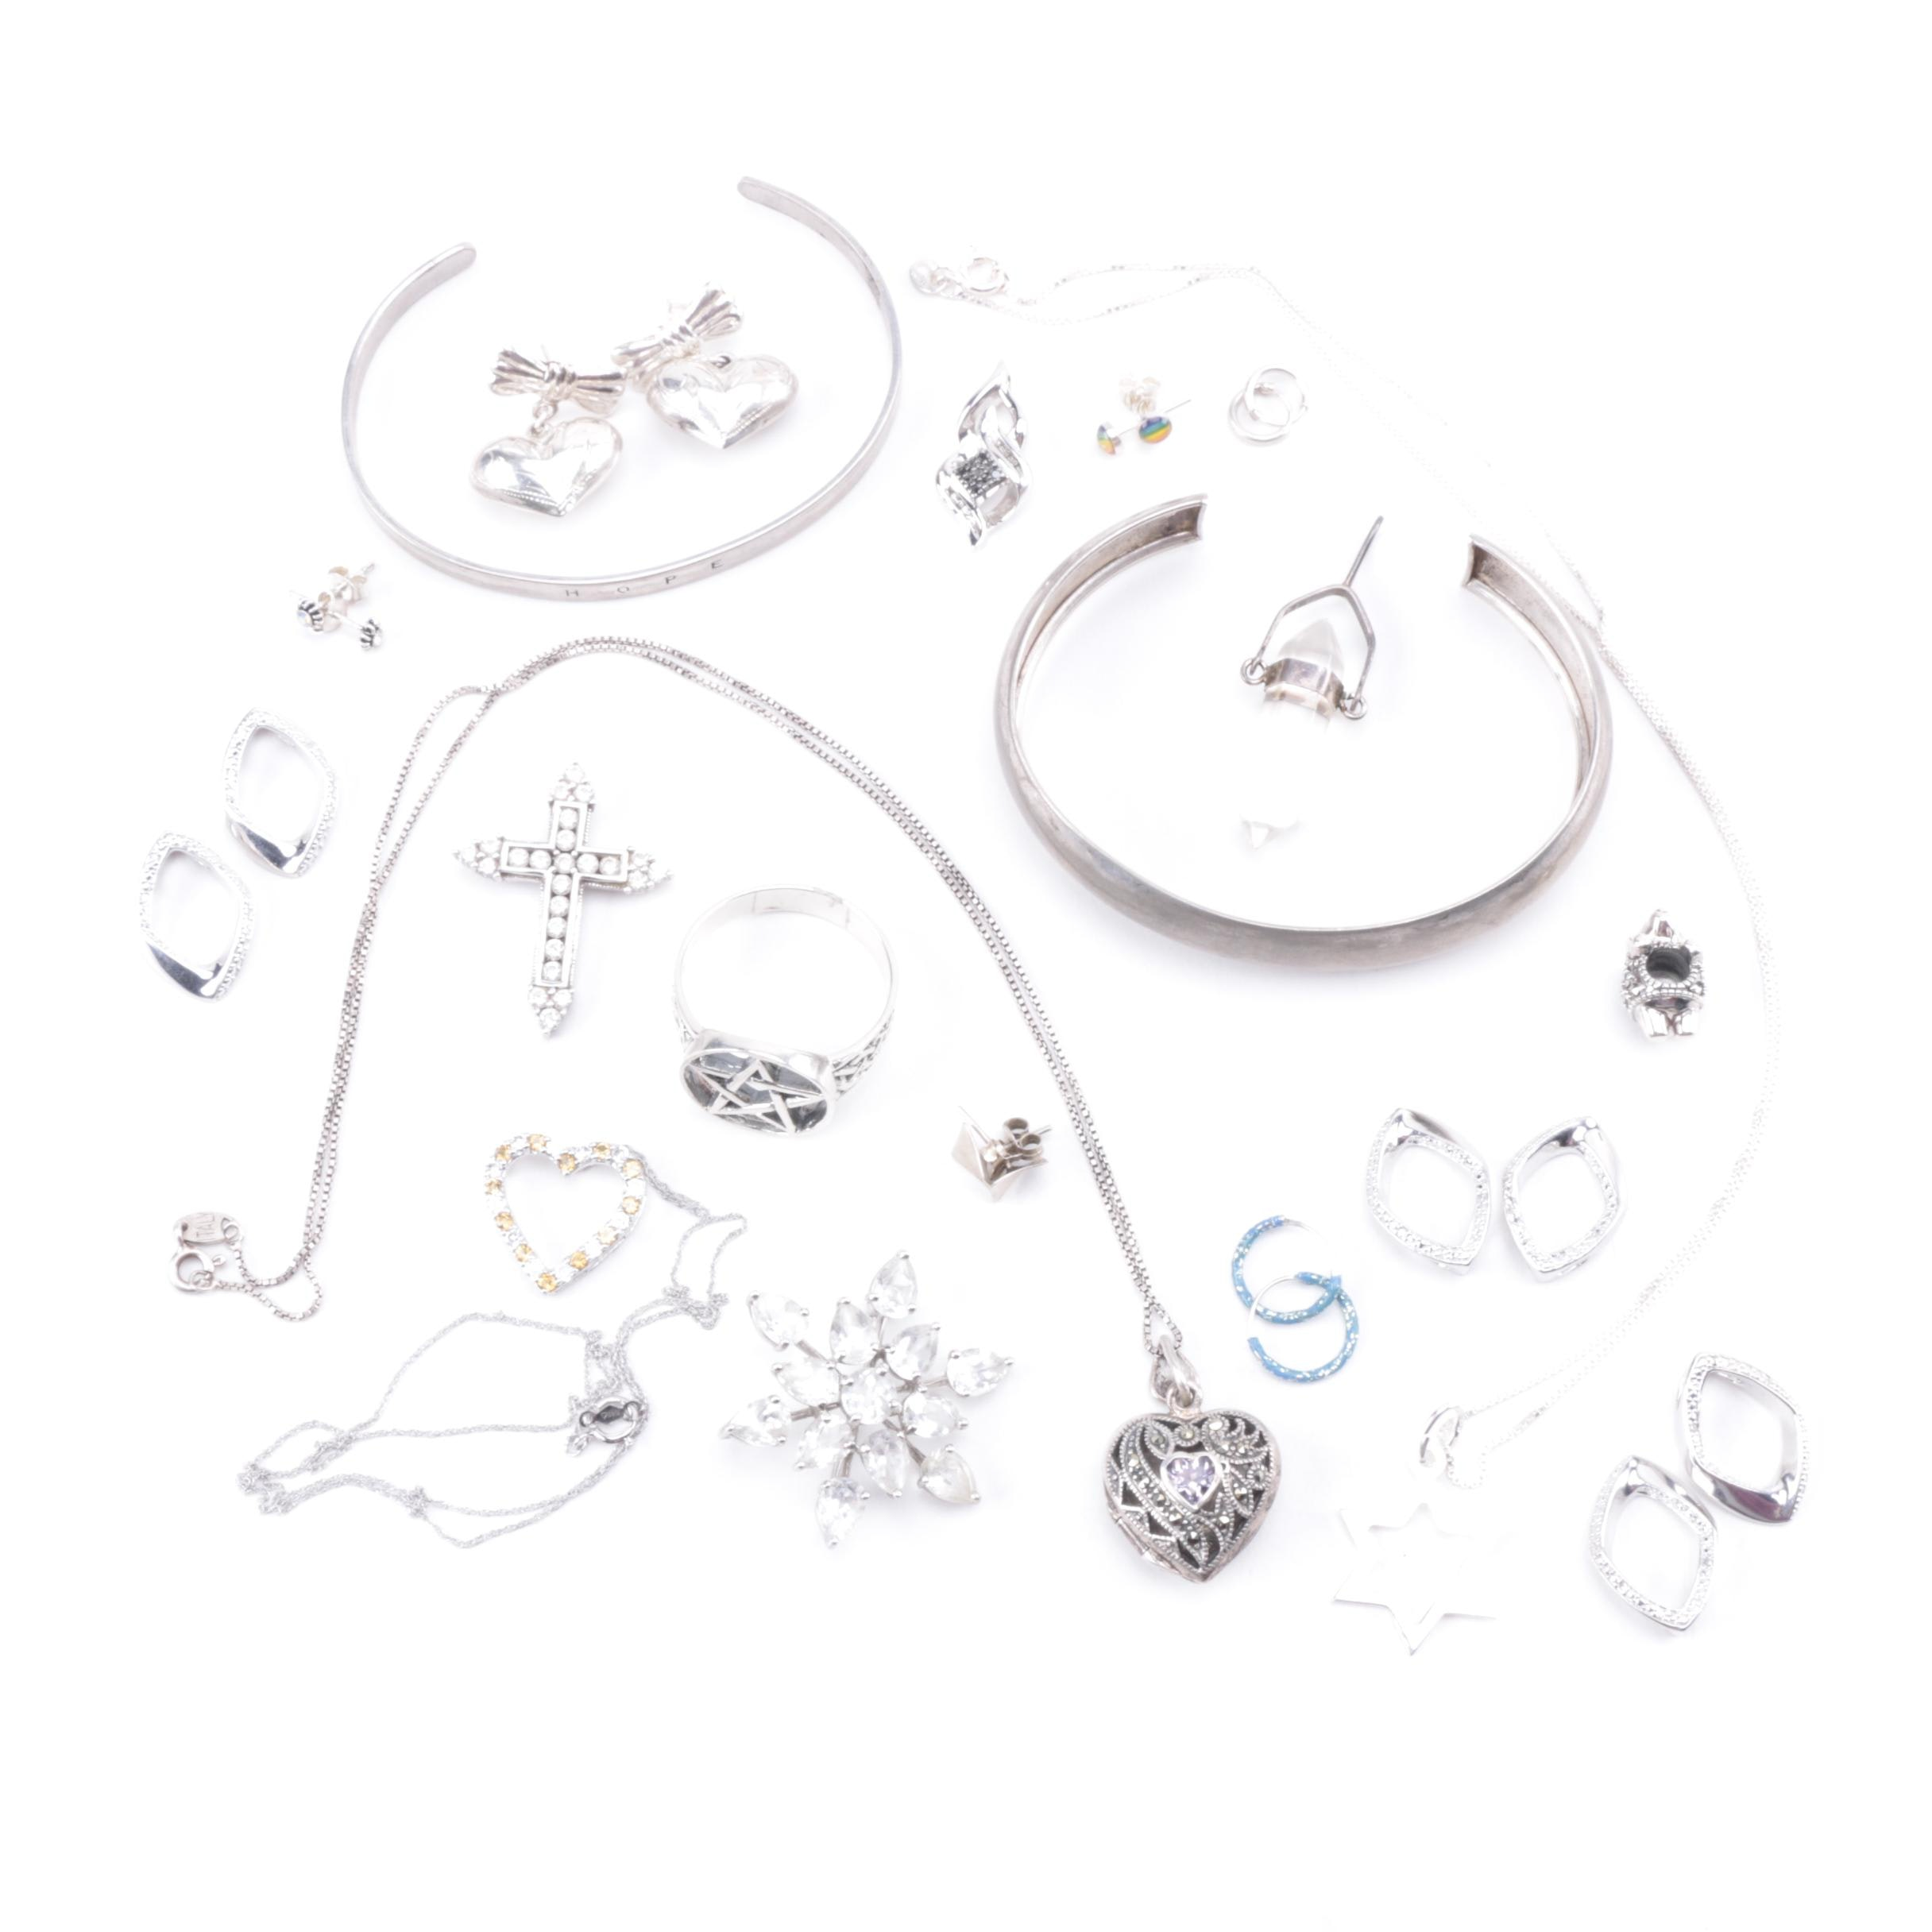 Collection of Sterling Silver Jewelry Including Quartz and More